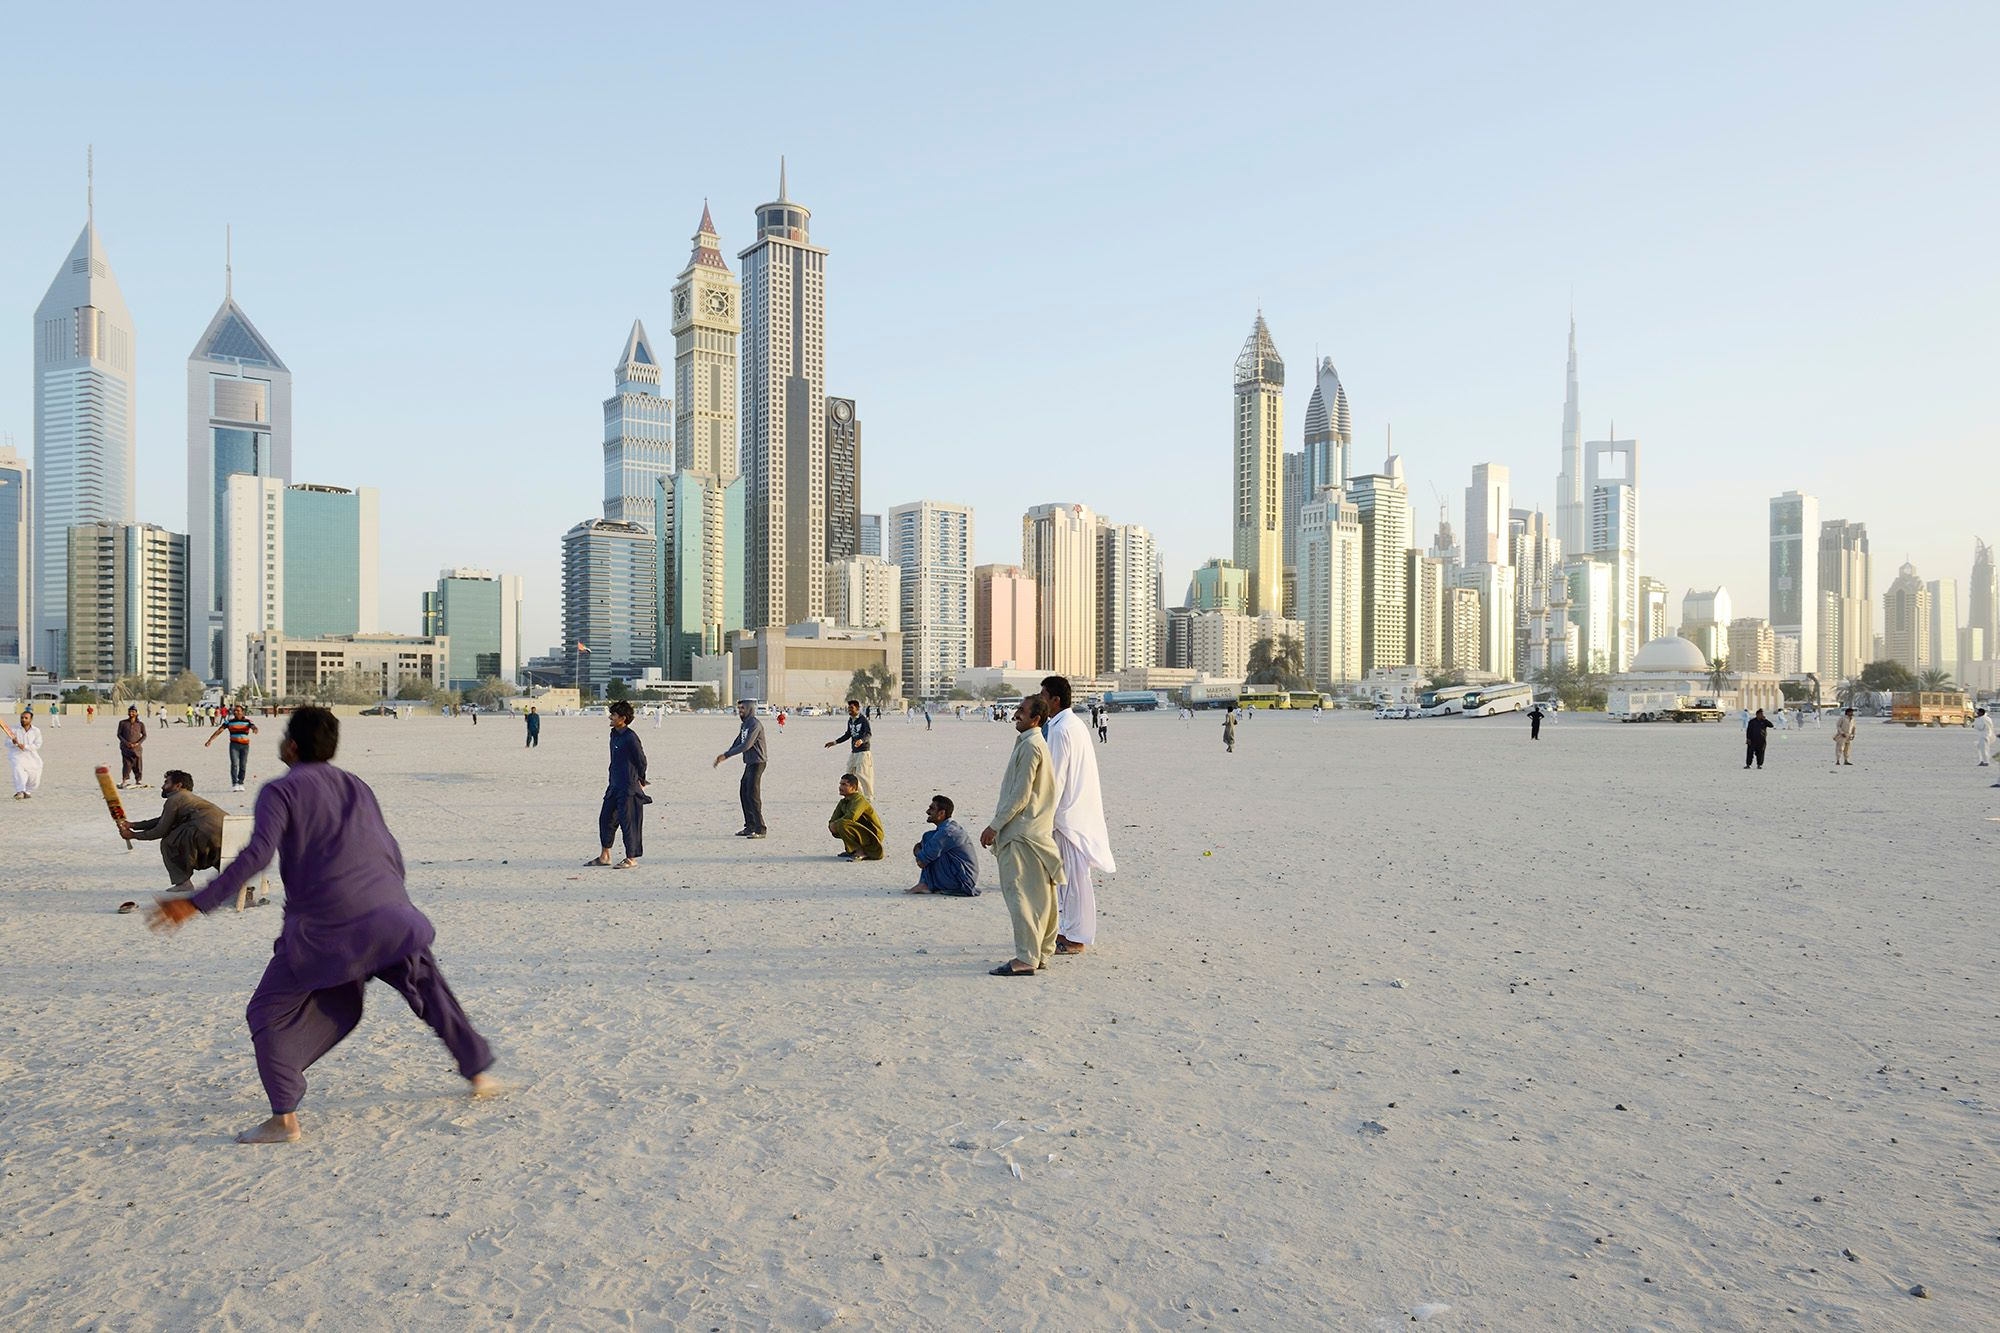 Arabian Transfer: Iconic Architecture and Everyday Street Life